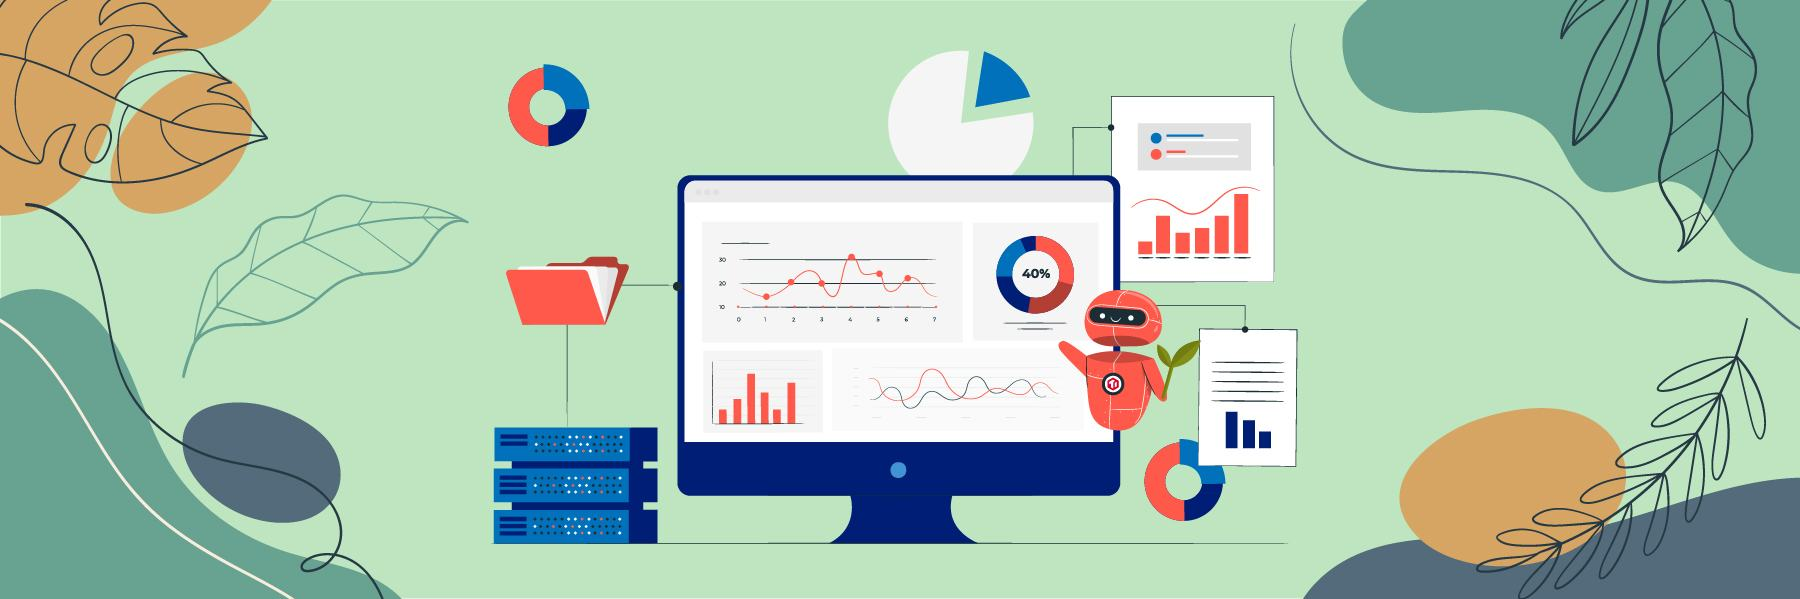 Real time data streaming tools and technologies